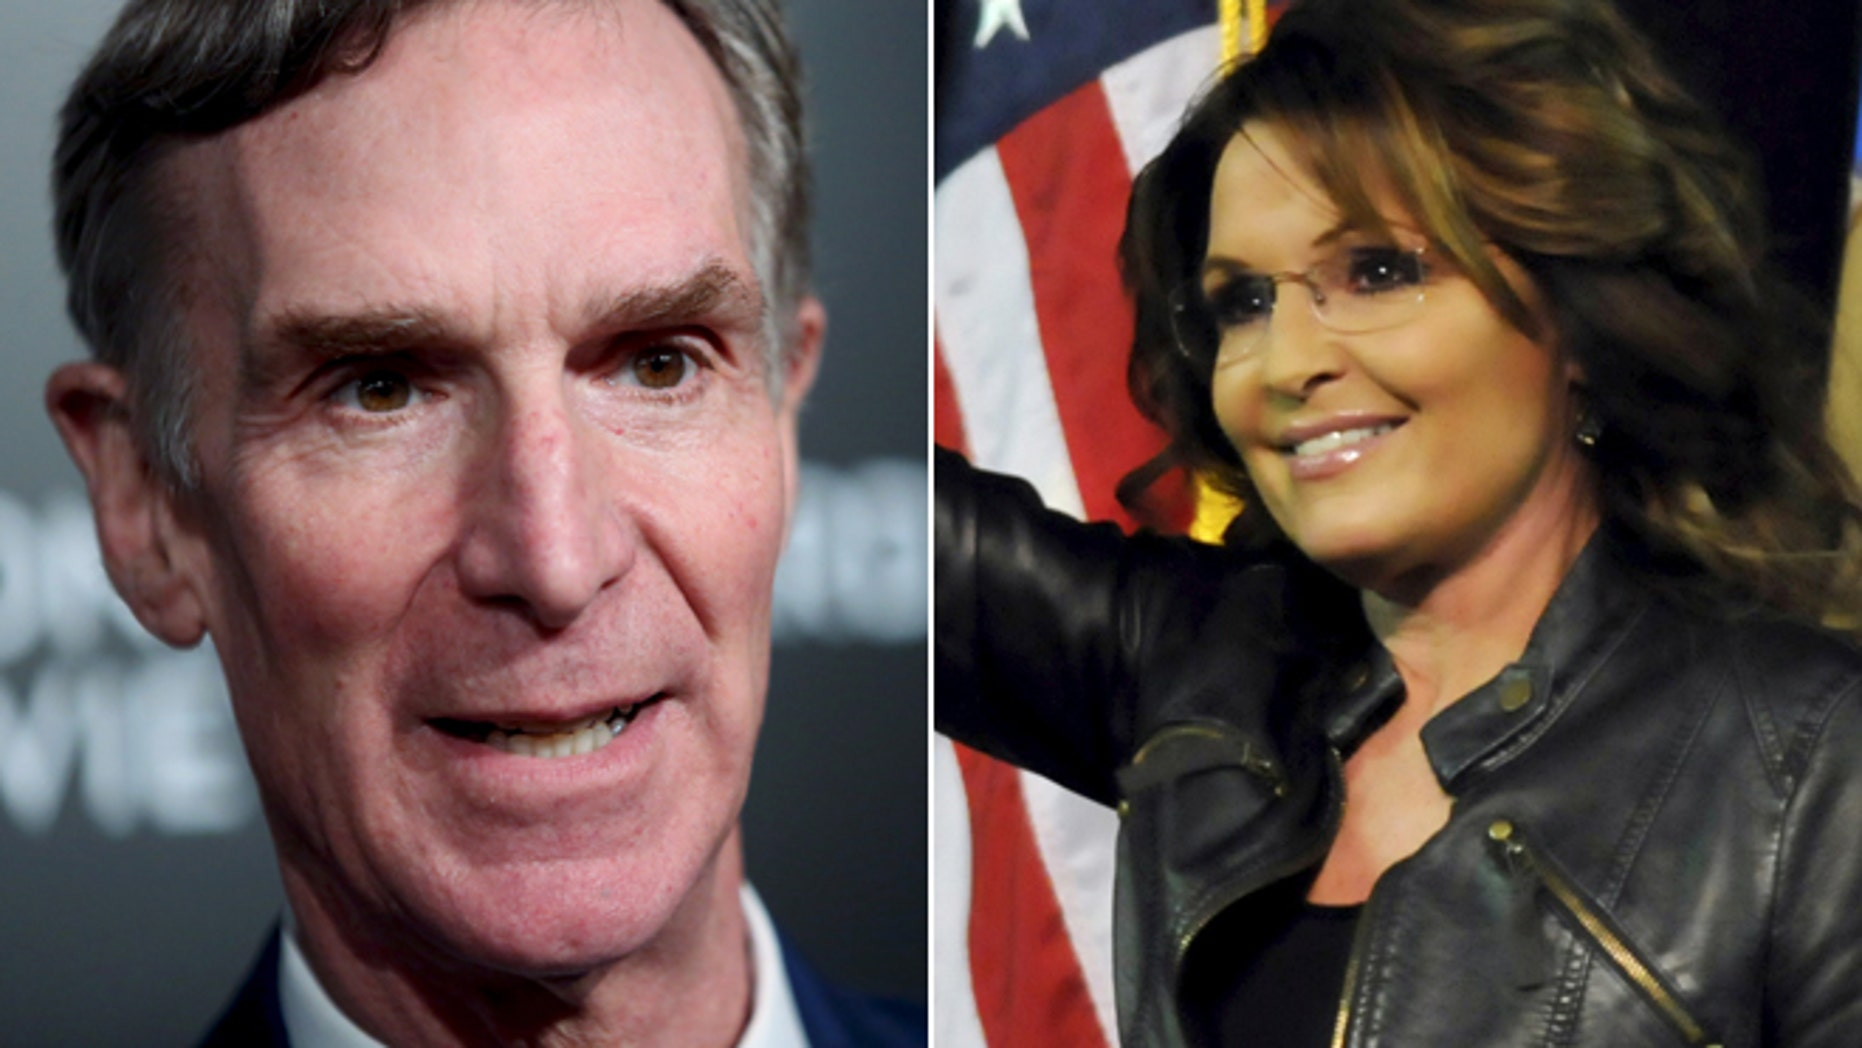 On left, Bill Nye the Science Guy; on right, former Alaska Gov. Sarah Palin